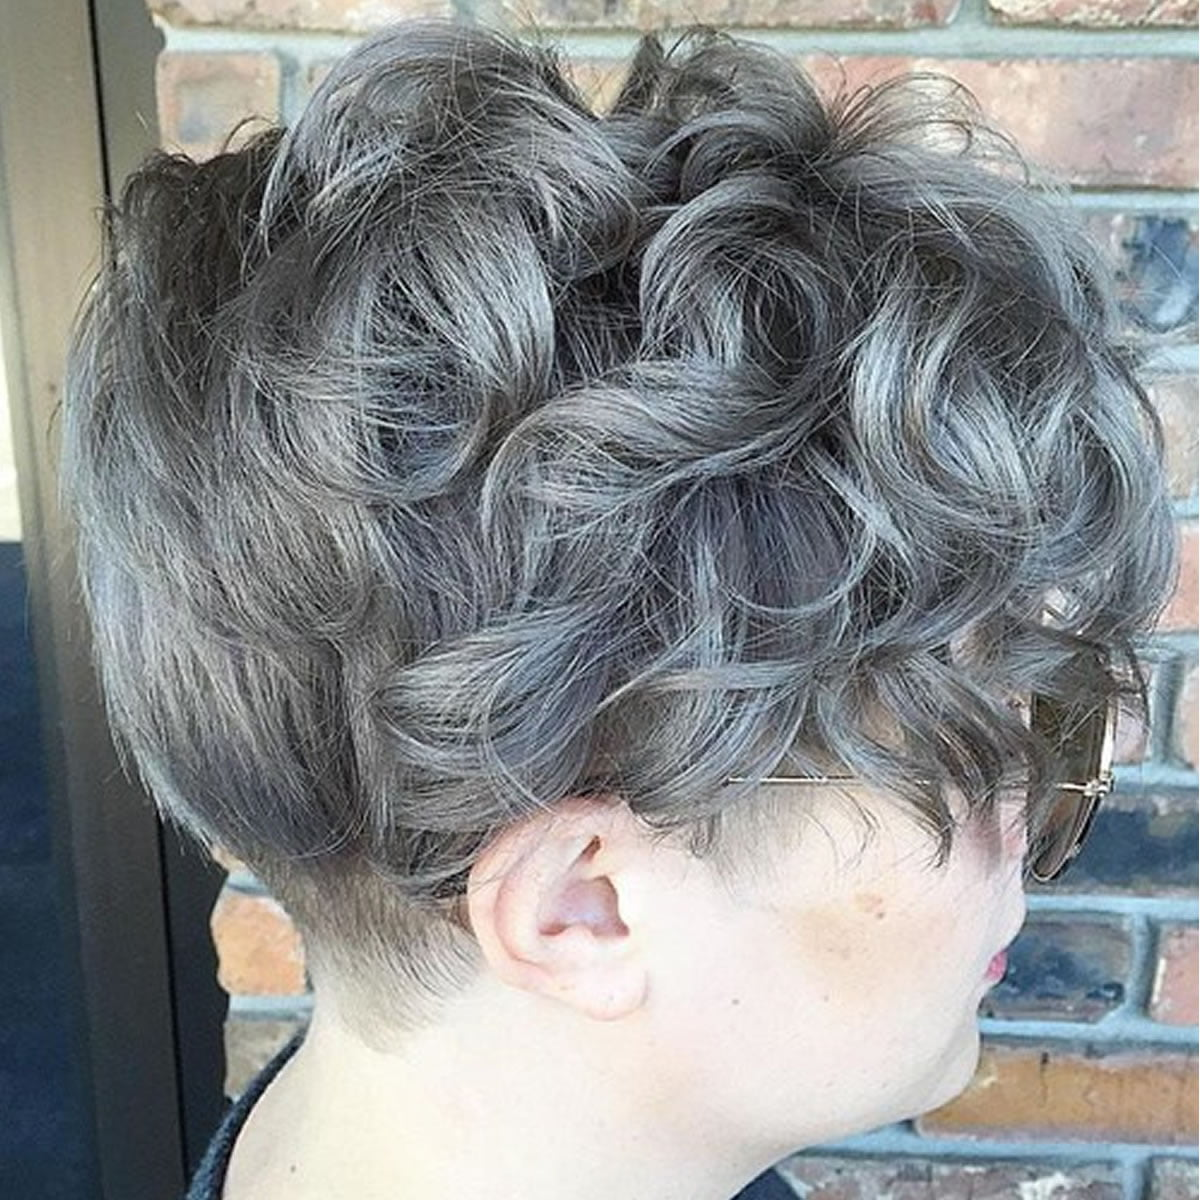 Short Grey Curly Hairstyles 2018 Hairstyles